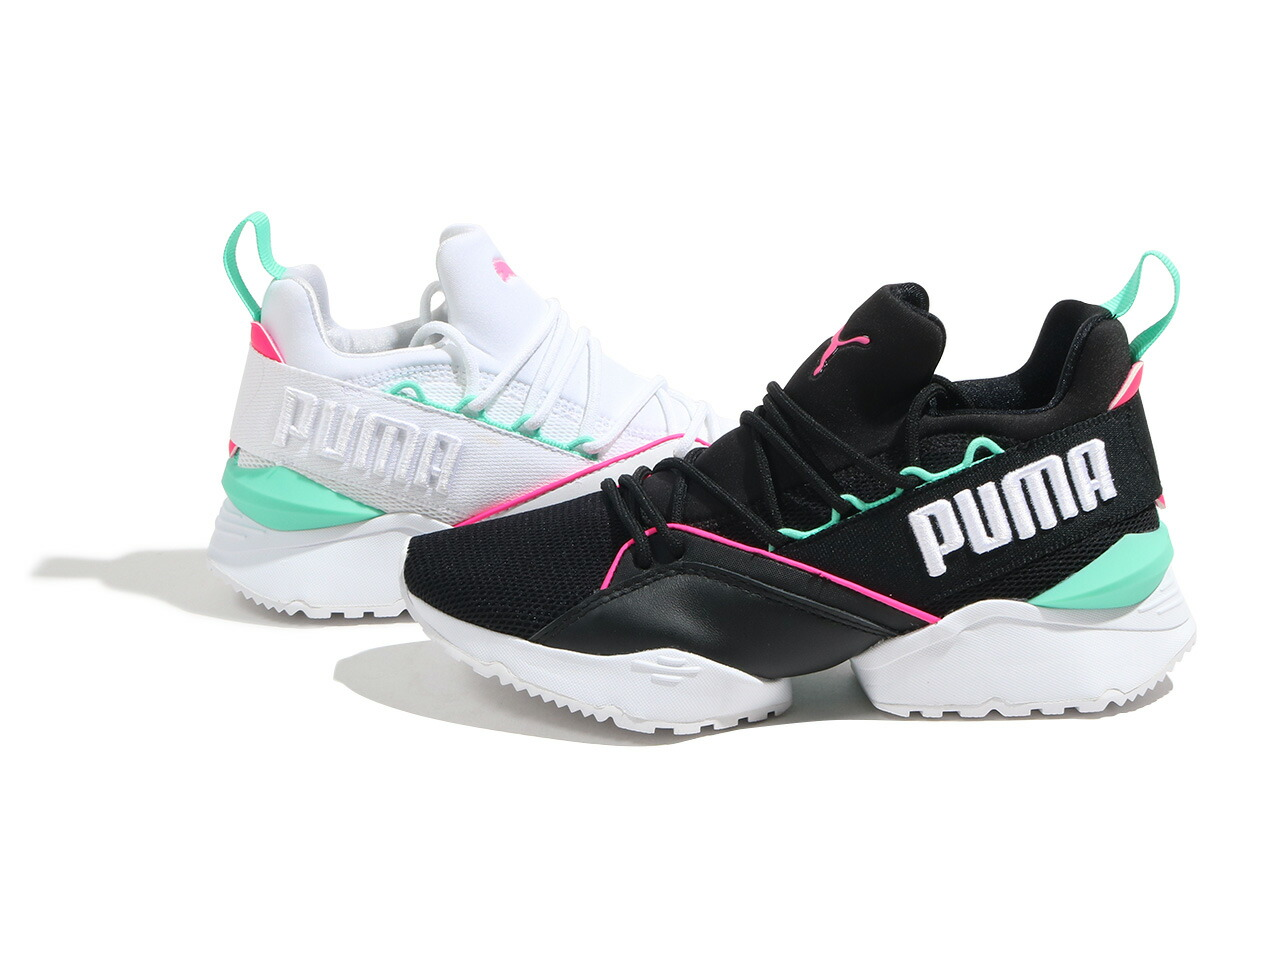 PUMA Mens Hybrid Rocket Runner Cross Trainer PUMA-191592 Christmas ... 7747272ad